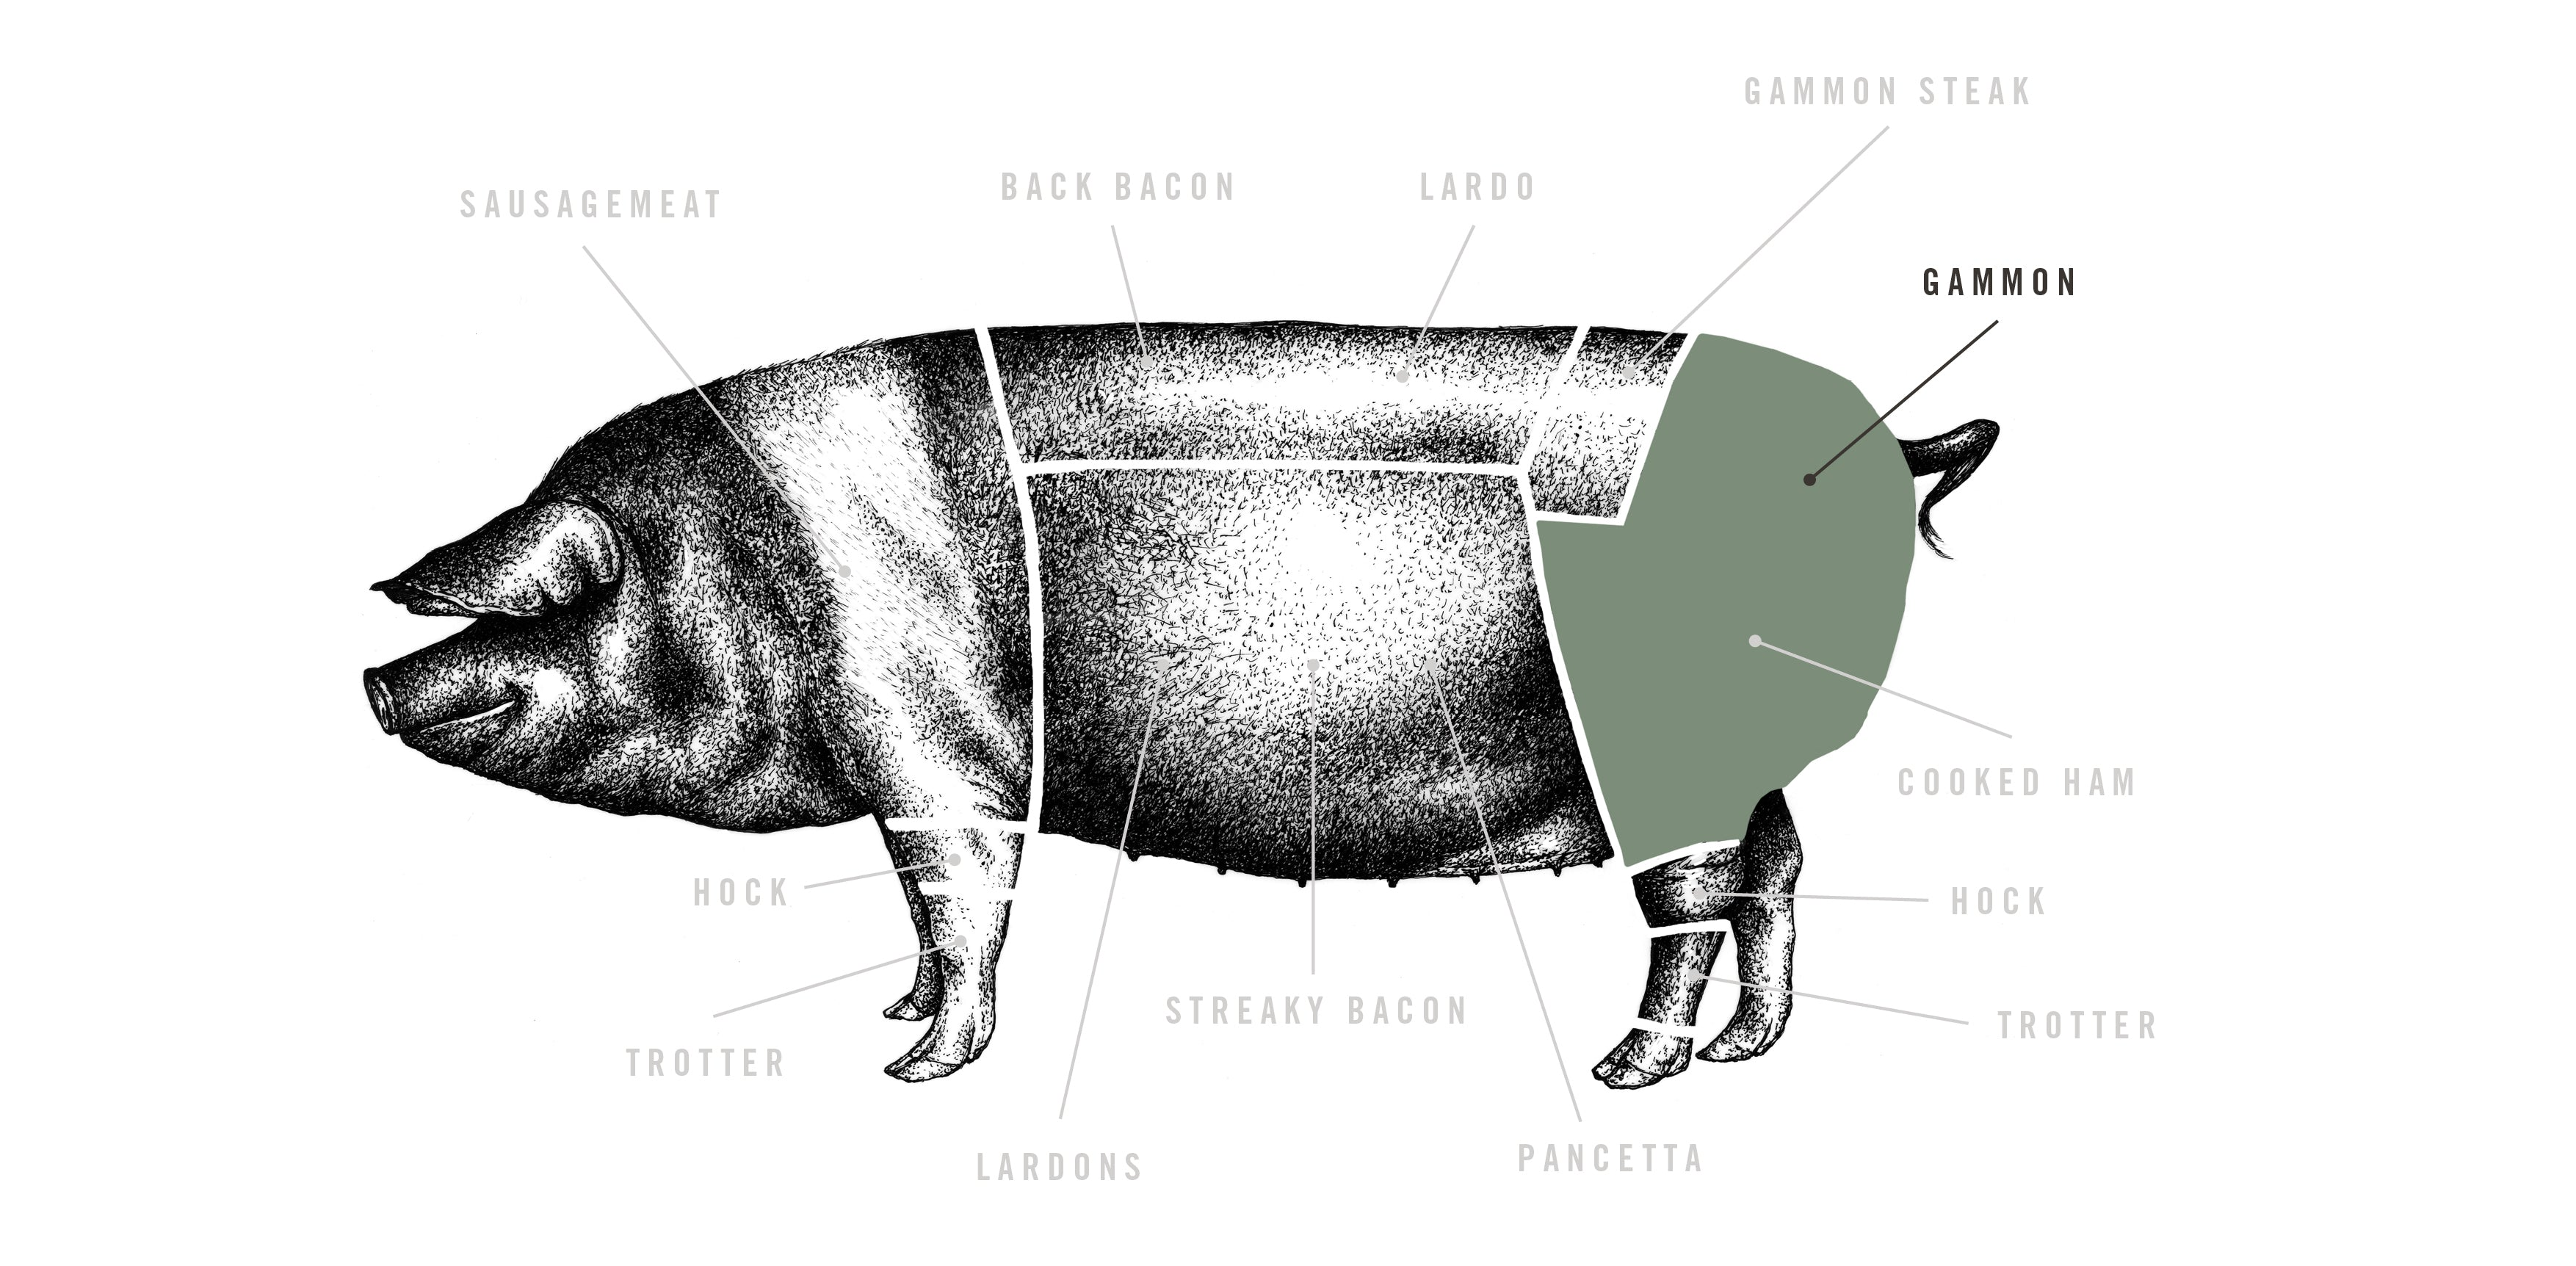 Saddleback Whole Ham meat cuts diagram